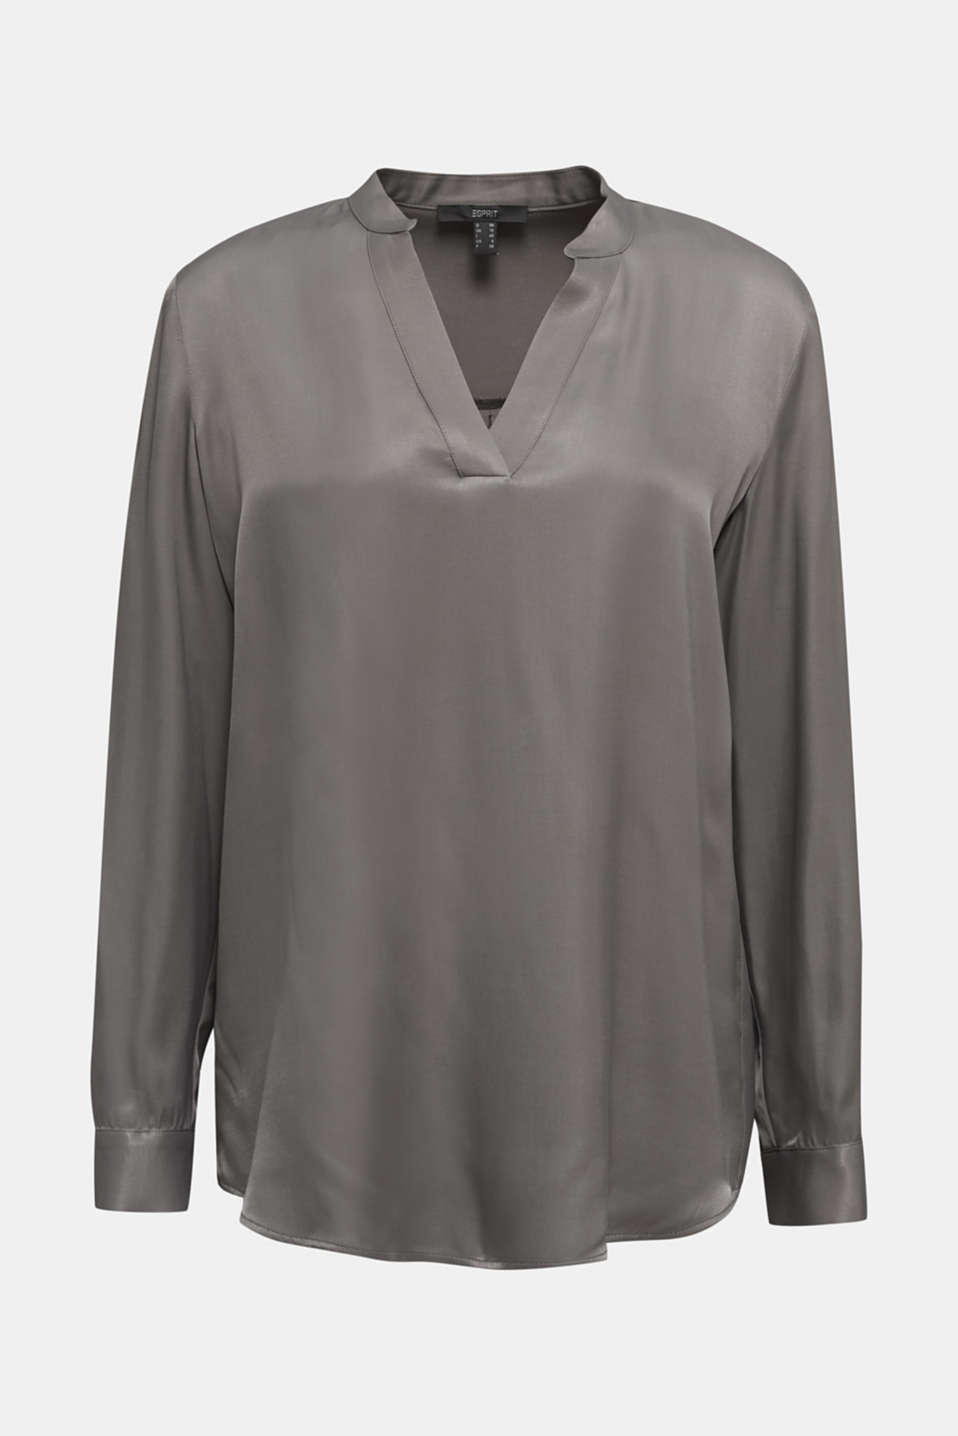 Satin Henley blouse, GUNMETAL, detail image number 7